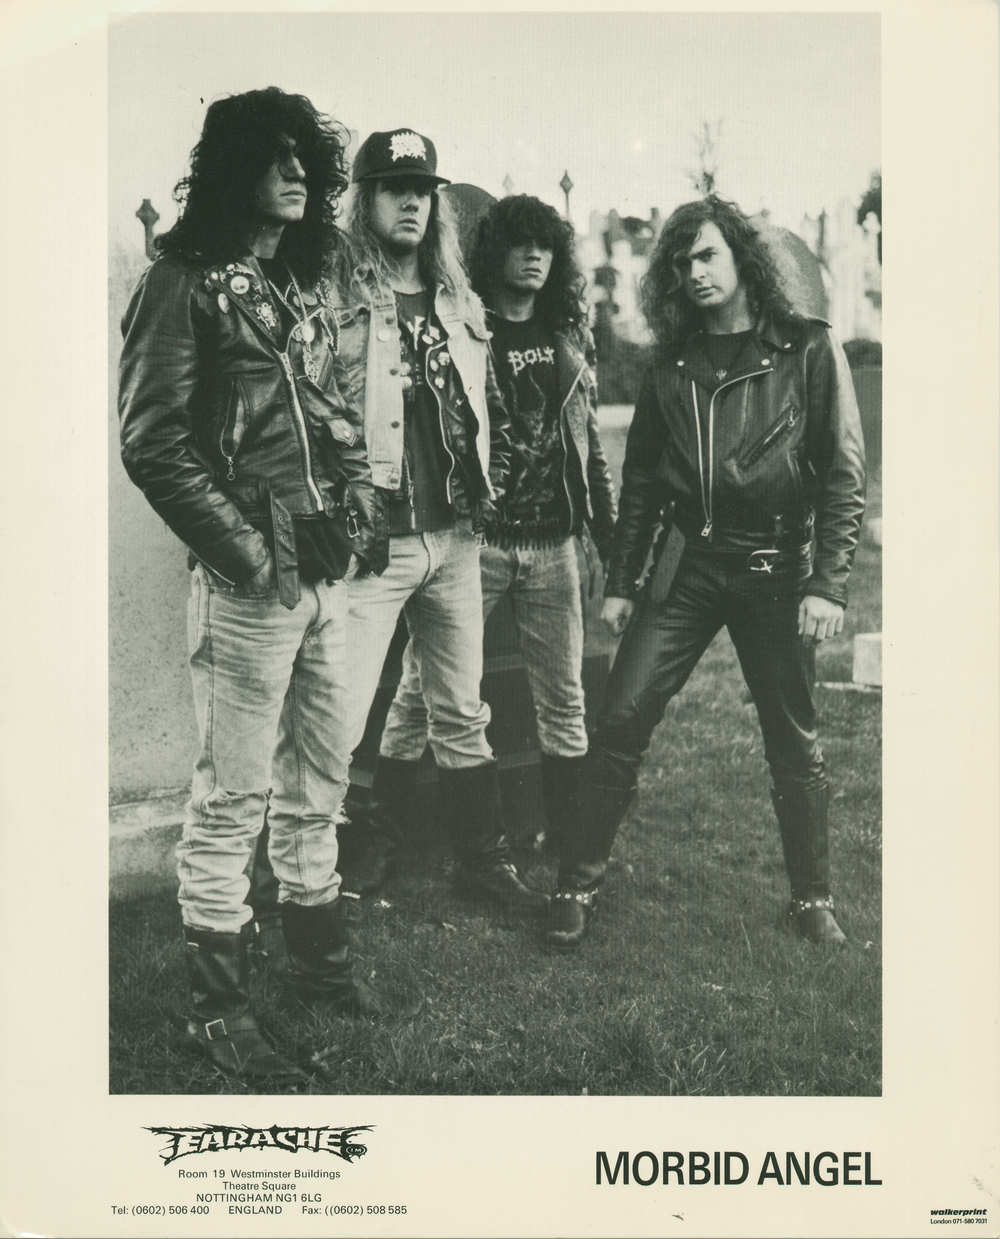 An early Morbid Angel promotional picture from Earache Records.